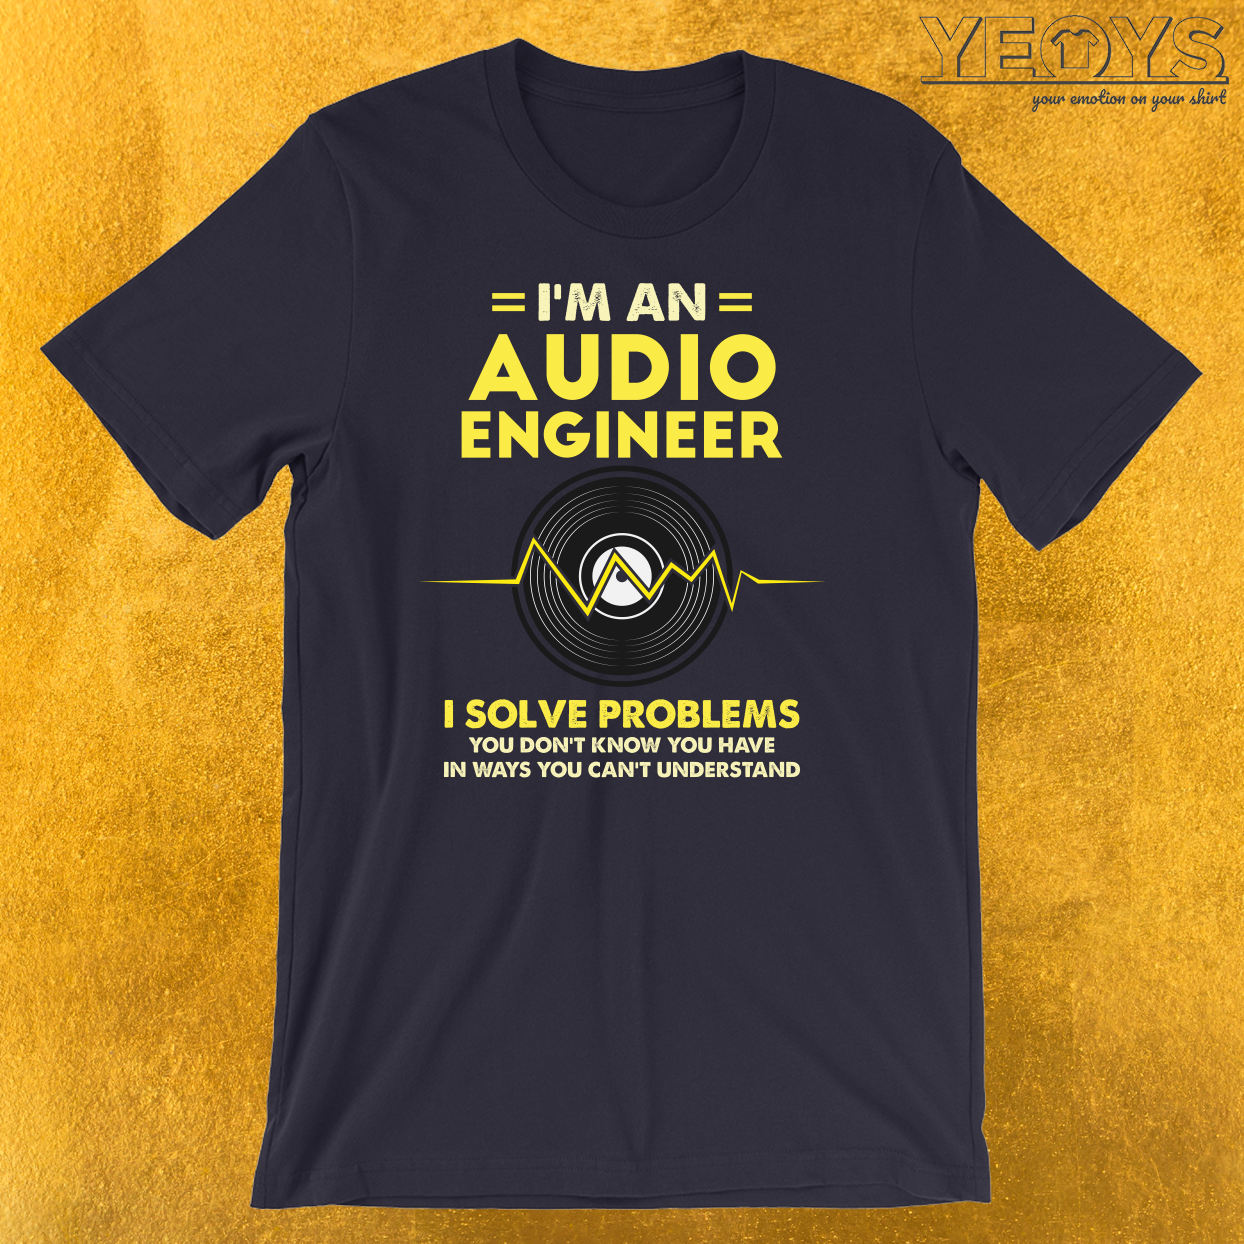 I'm An Audio Engineer T-Shirt